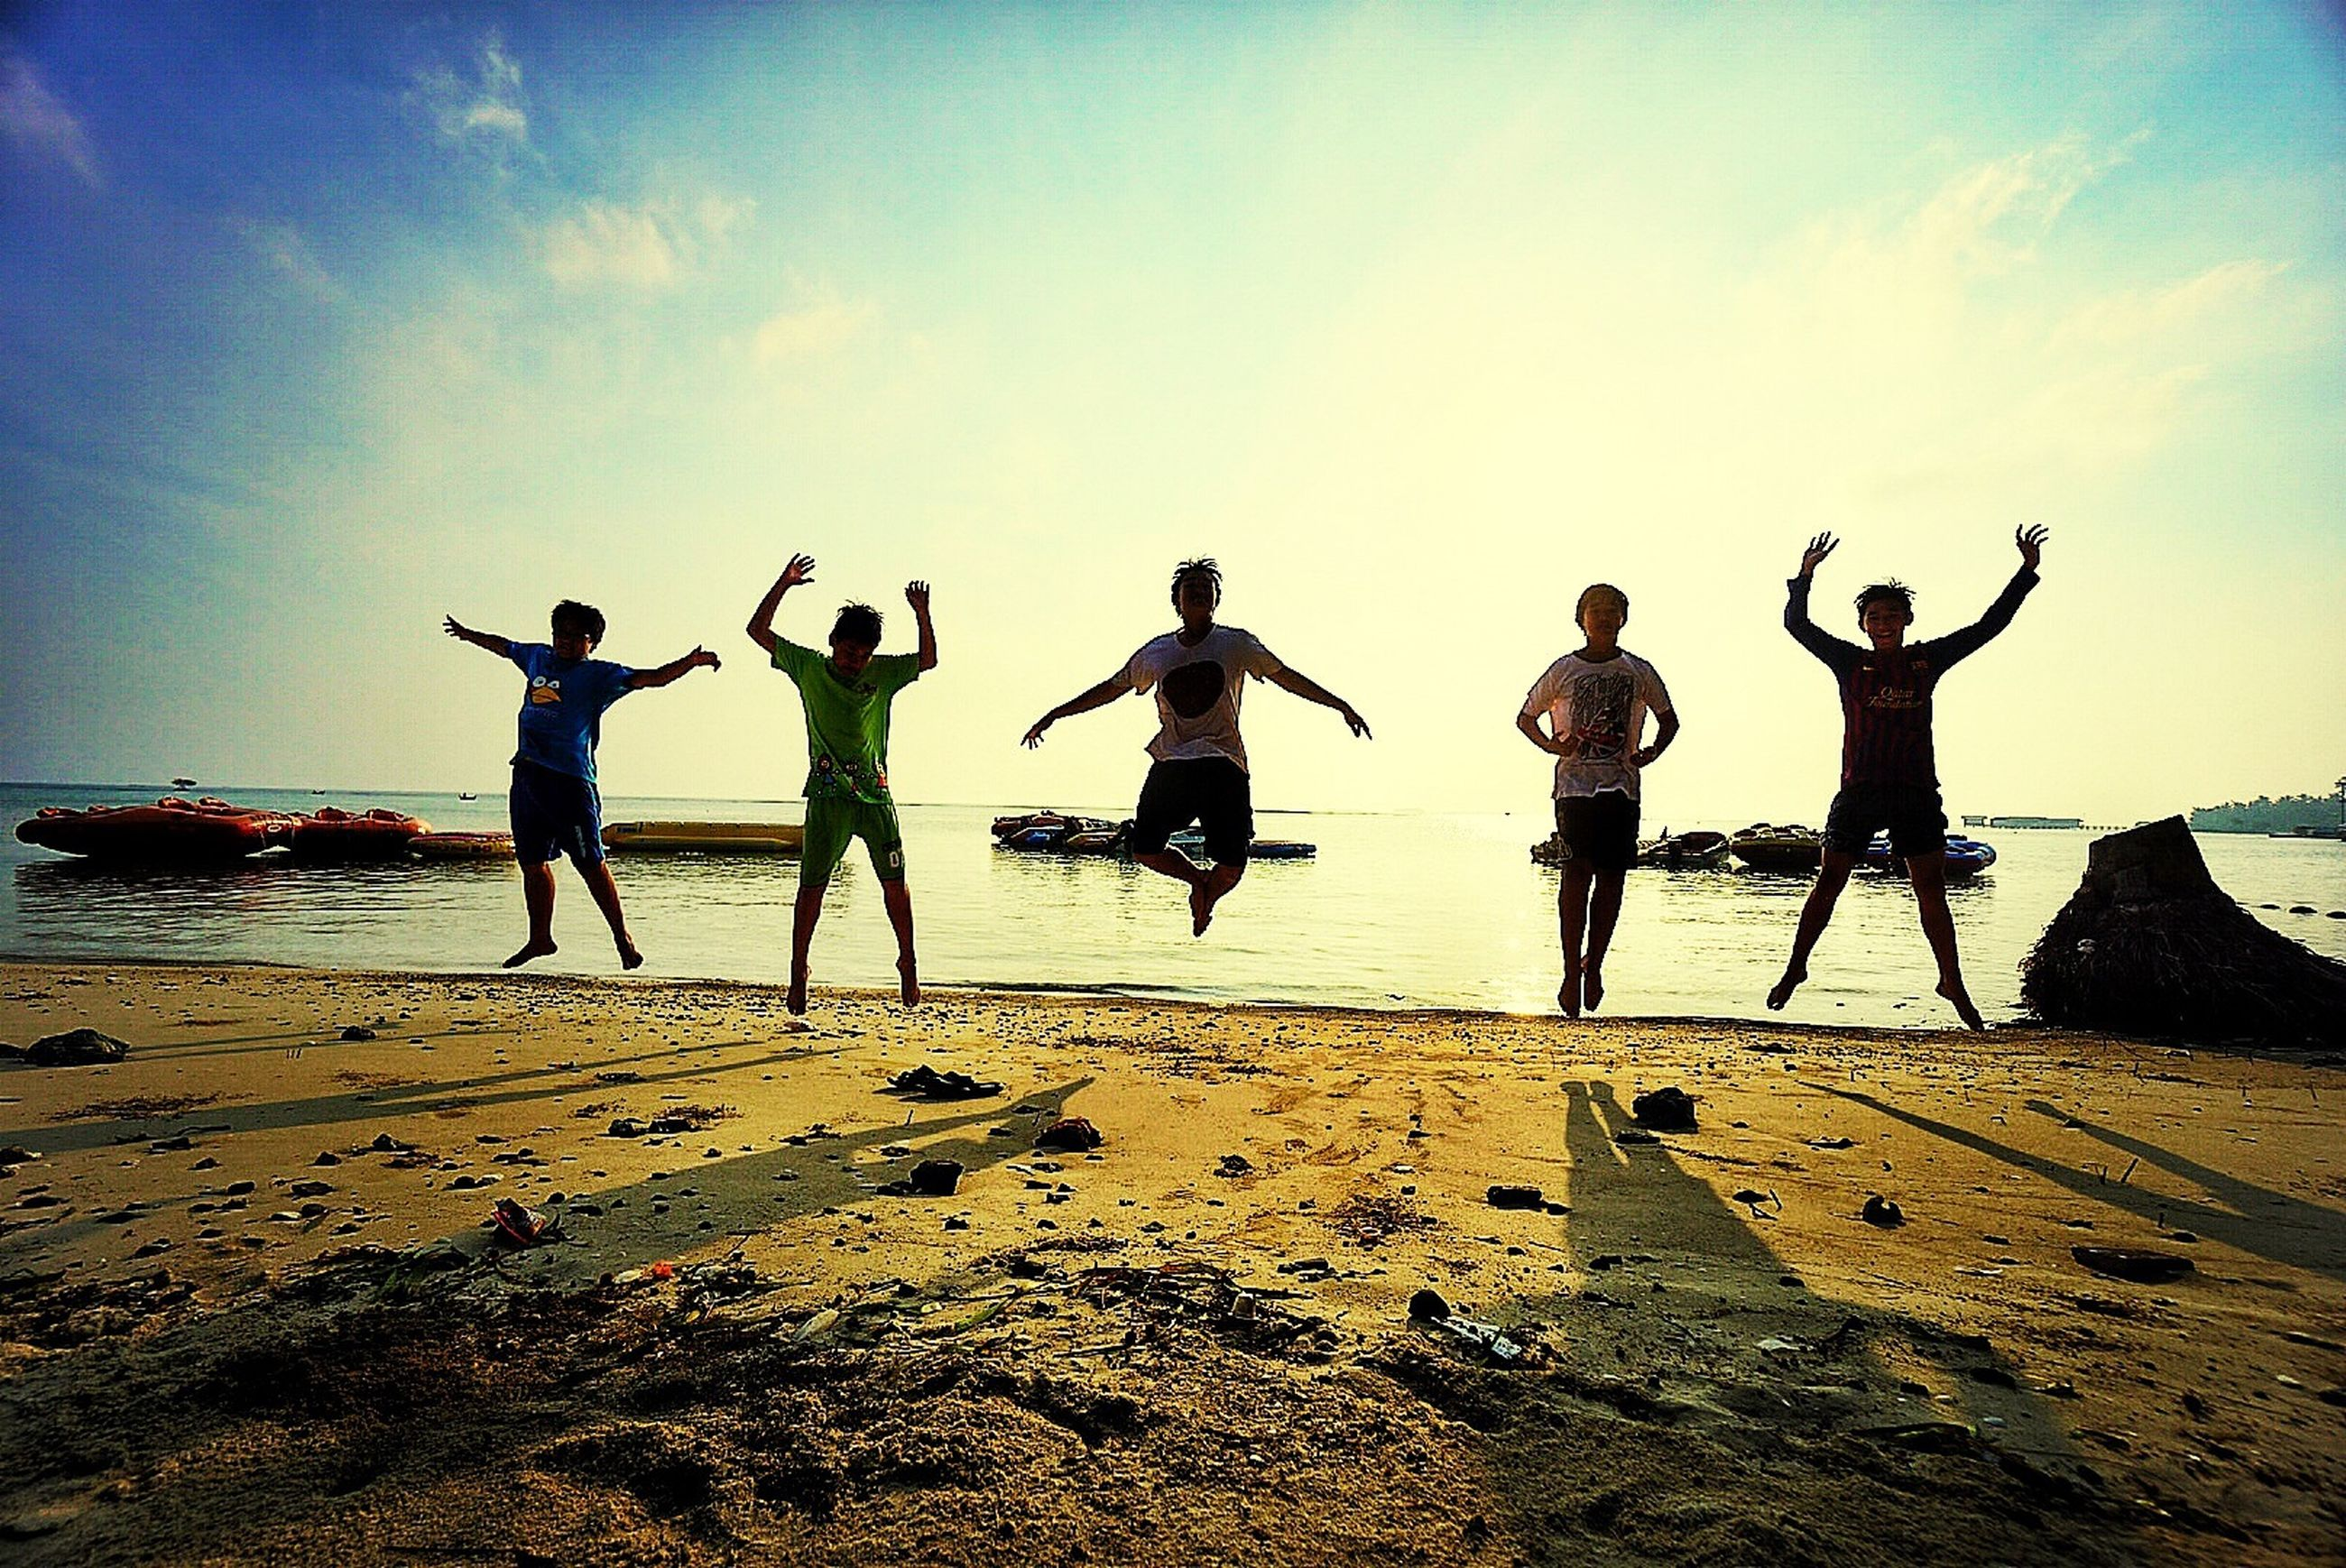 beach, sea, sand, shore, sky, water, leisure activity, lifestyles, full length, men, horizon over water, vacations, enjoyment, togetherness, sunlight, playing, standing, fun, boys